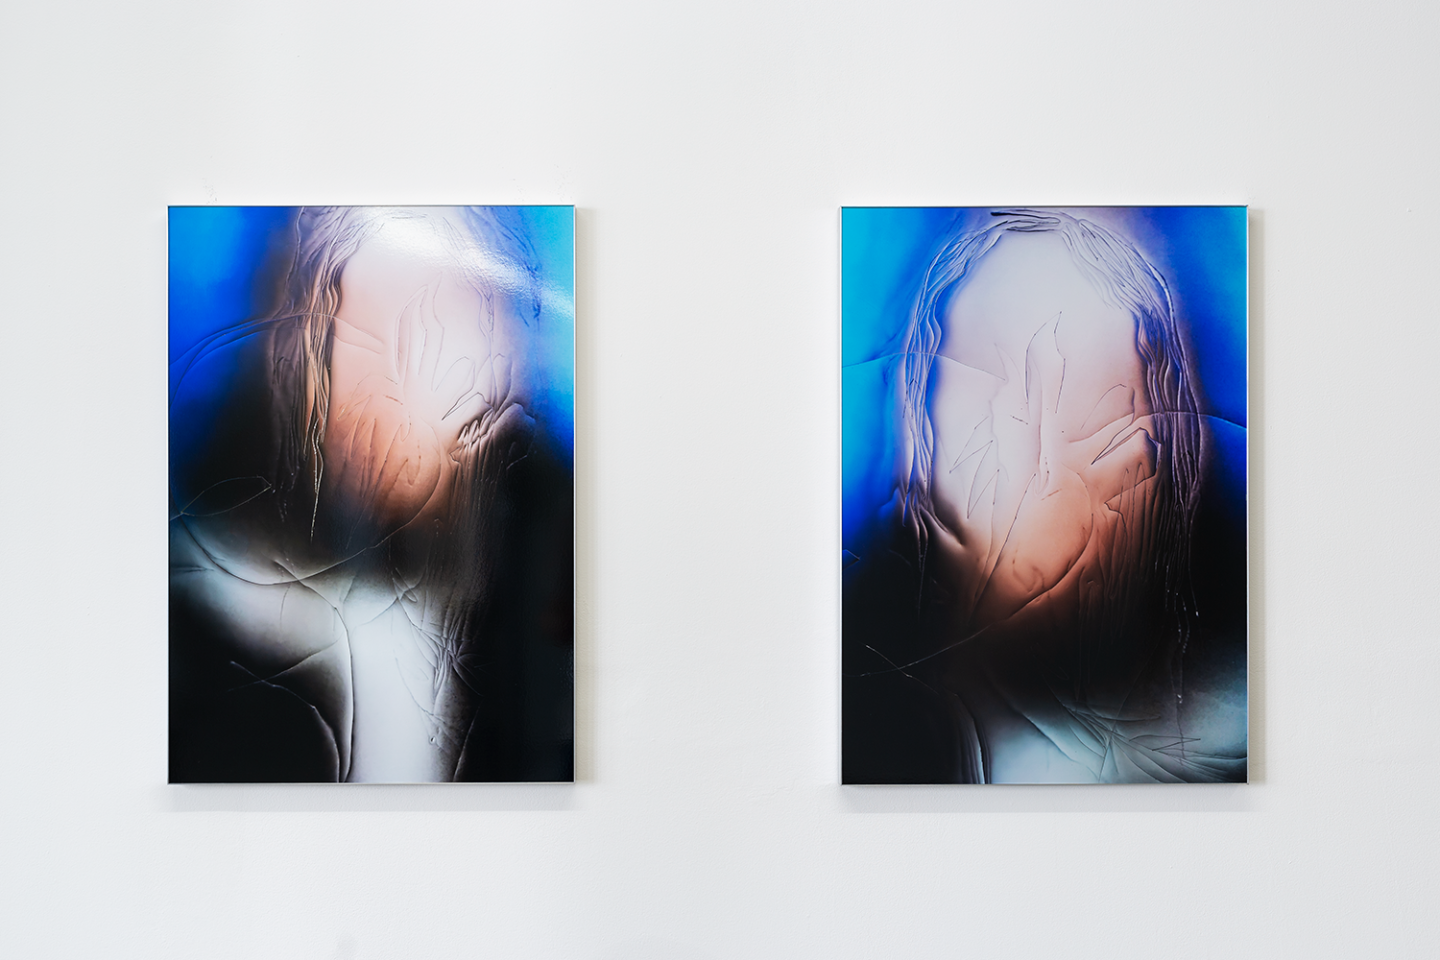 Installation View Groupshow «Double Take / view on Manon Wertenbroek, Portrait left, wet hair & Portrait left, wet hair, both 2018» at Last Tango Zurich, 2018 / Photography: Kilian Bannwart / Courtesy: the artists and Last Tango